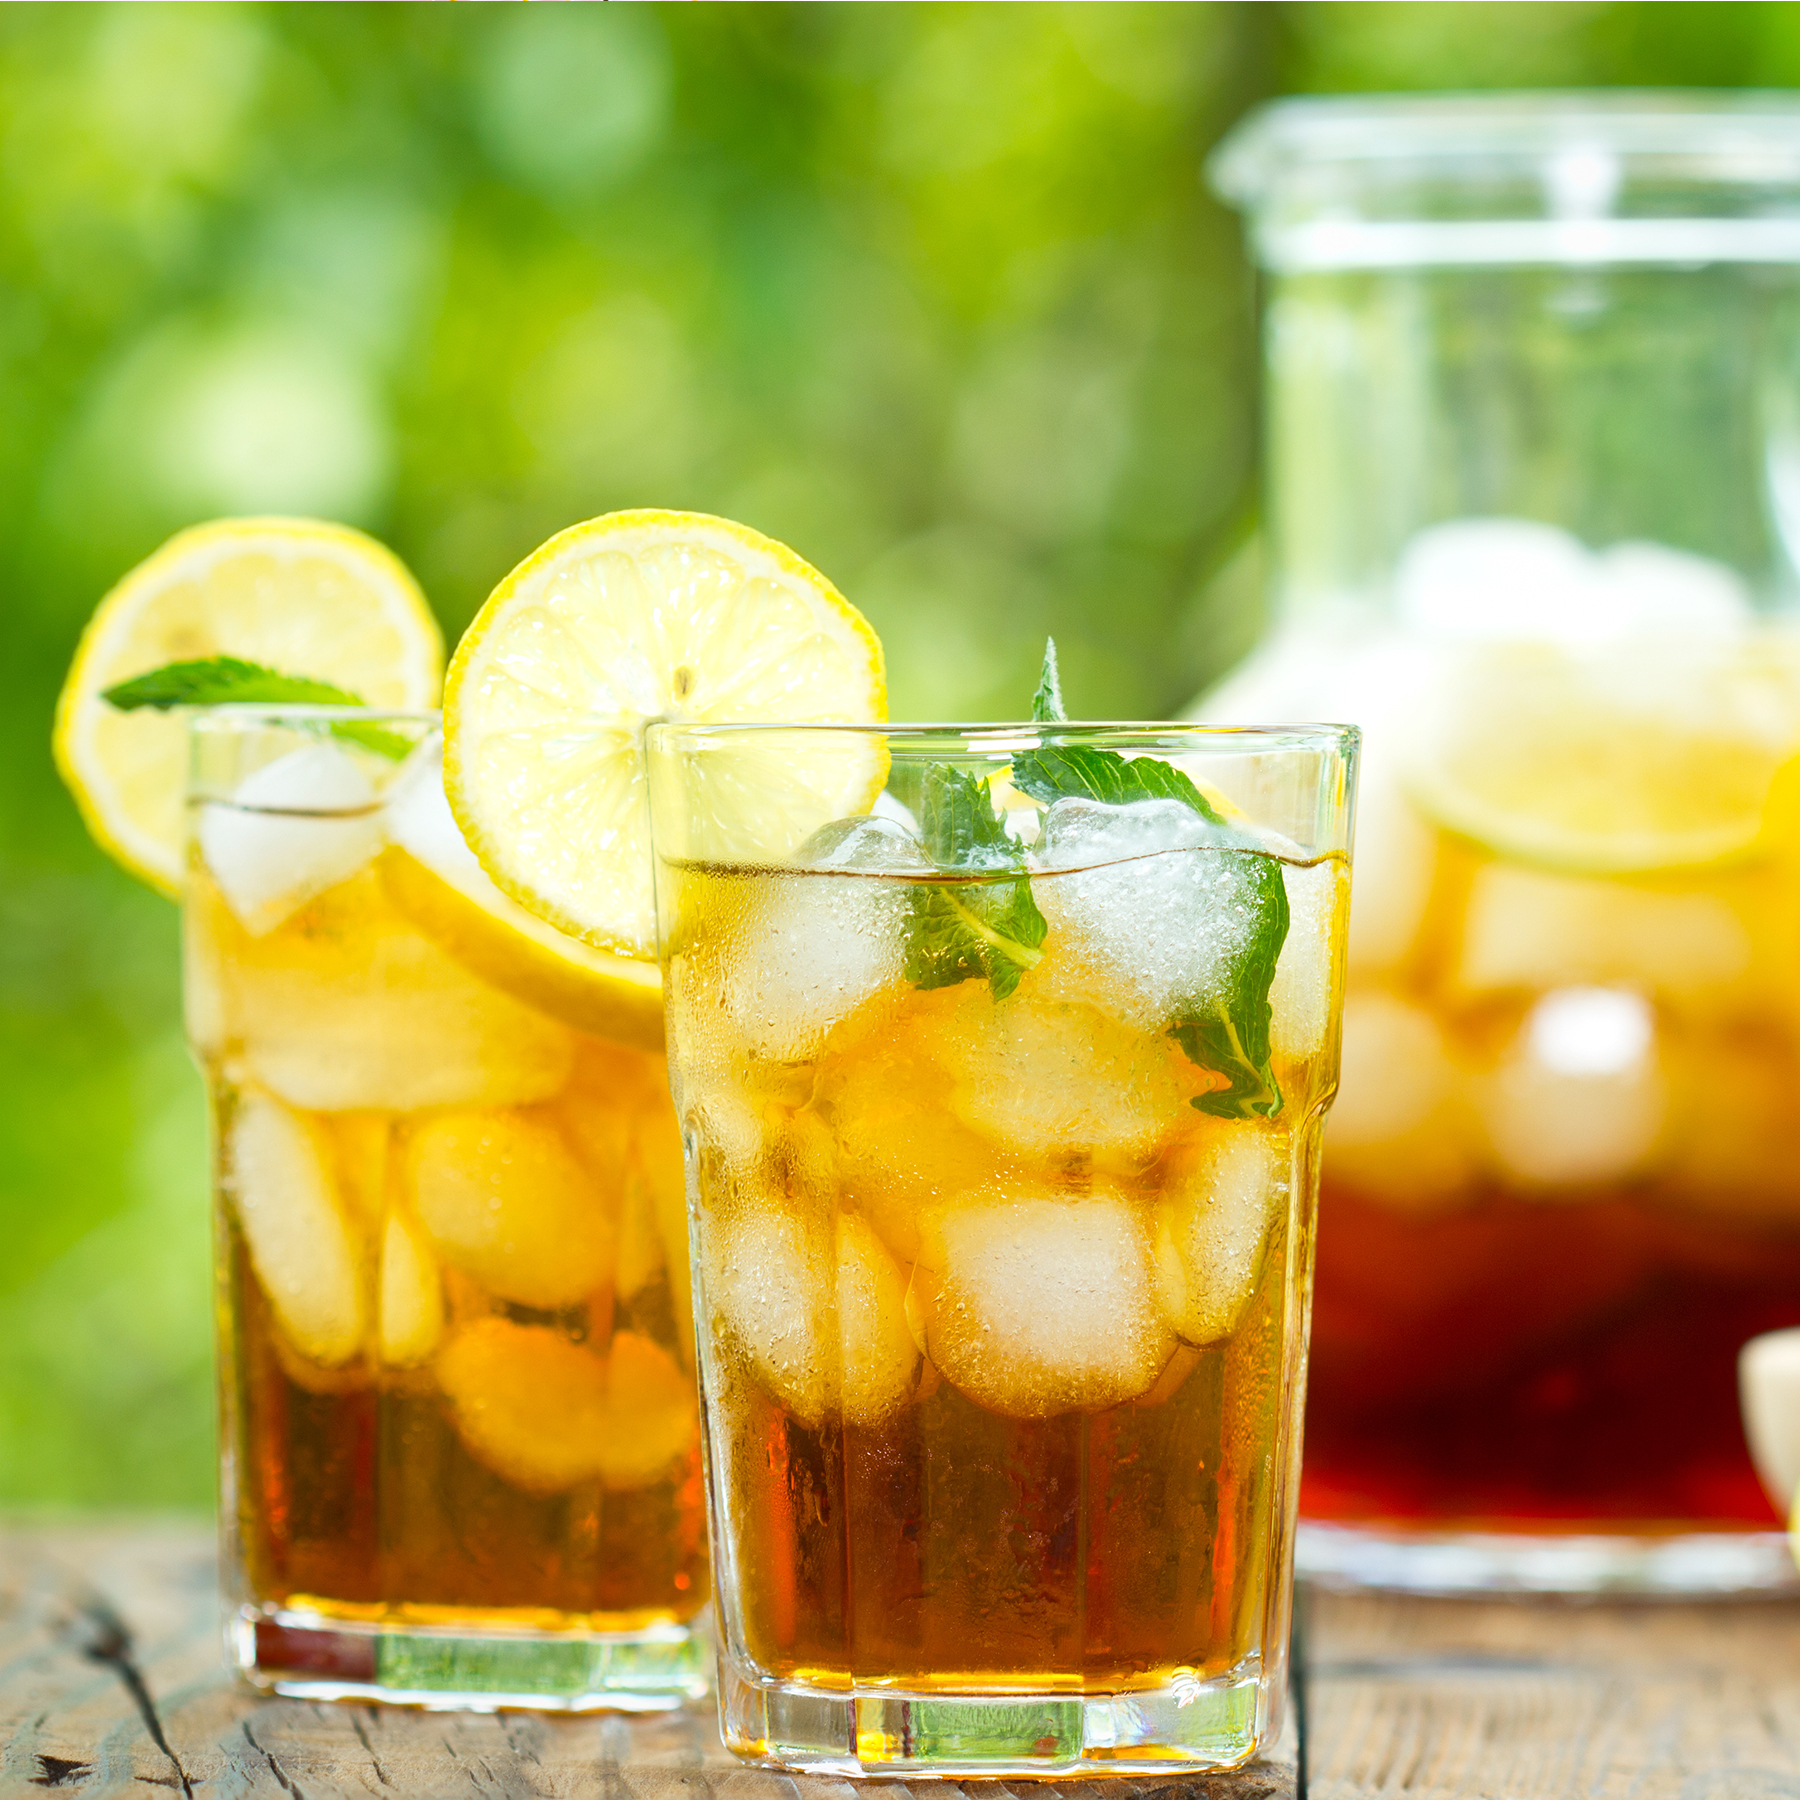 5 Healthy Iced Tea Recipes to Wow your Summer Guests